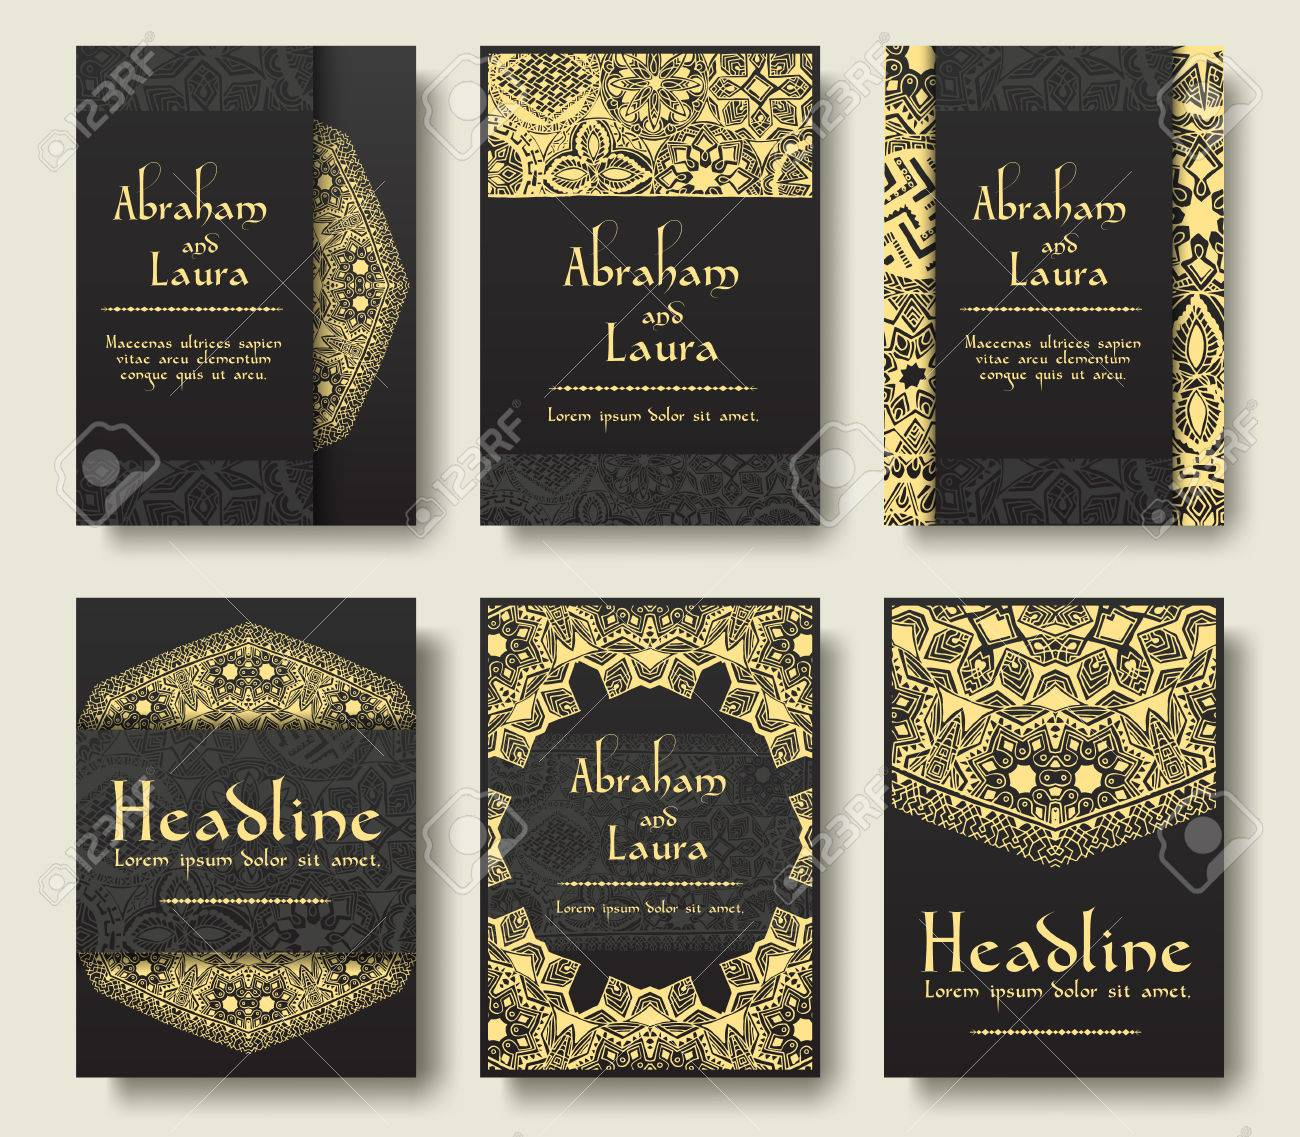 Set of flyer pages ornamental illustration stylized gold concept. Luxury art traditional, Islam, arabic, indian, ottoman motifs, elements. Vector decorative retro greeting card or invitation design. - 51591804